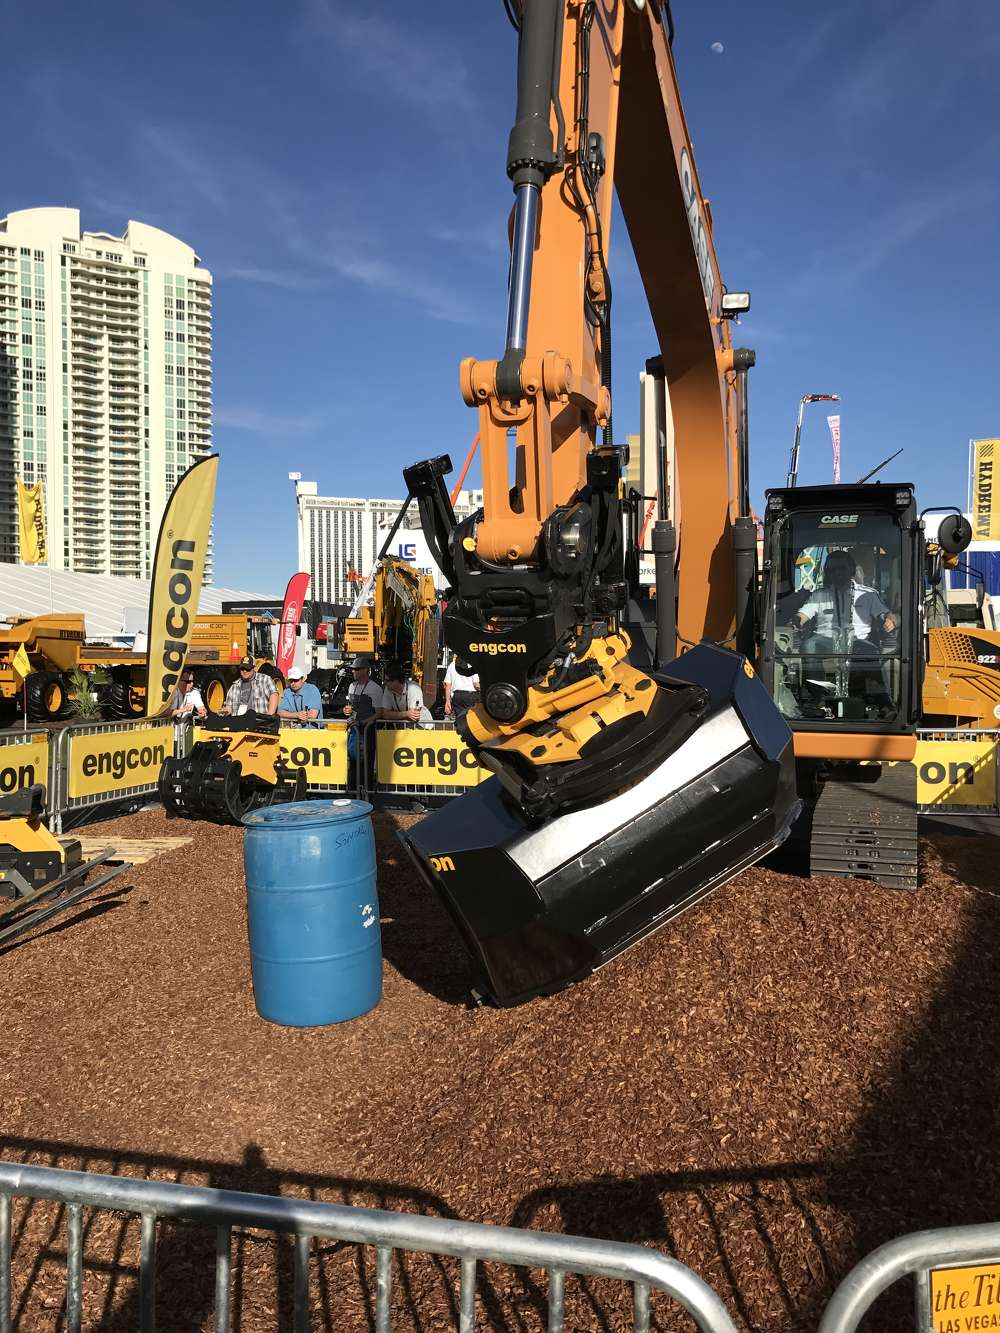 Engcon showed off its Tiltrators and Q-Safe quick coupler with EC-Oil automatic connection at ConExpo.